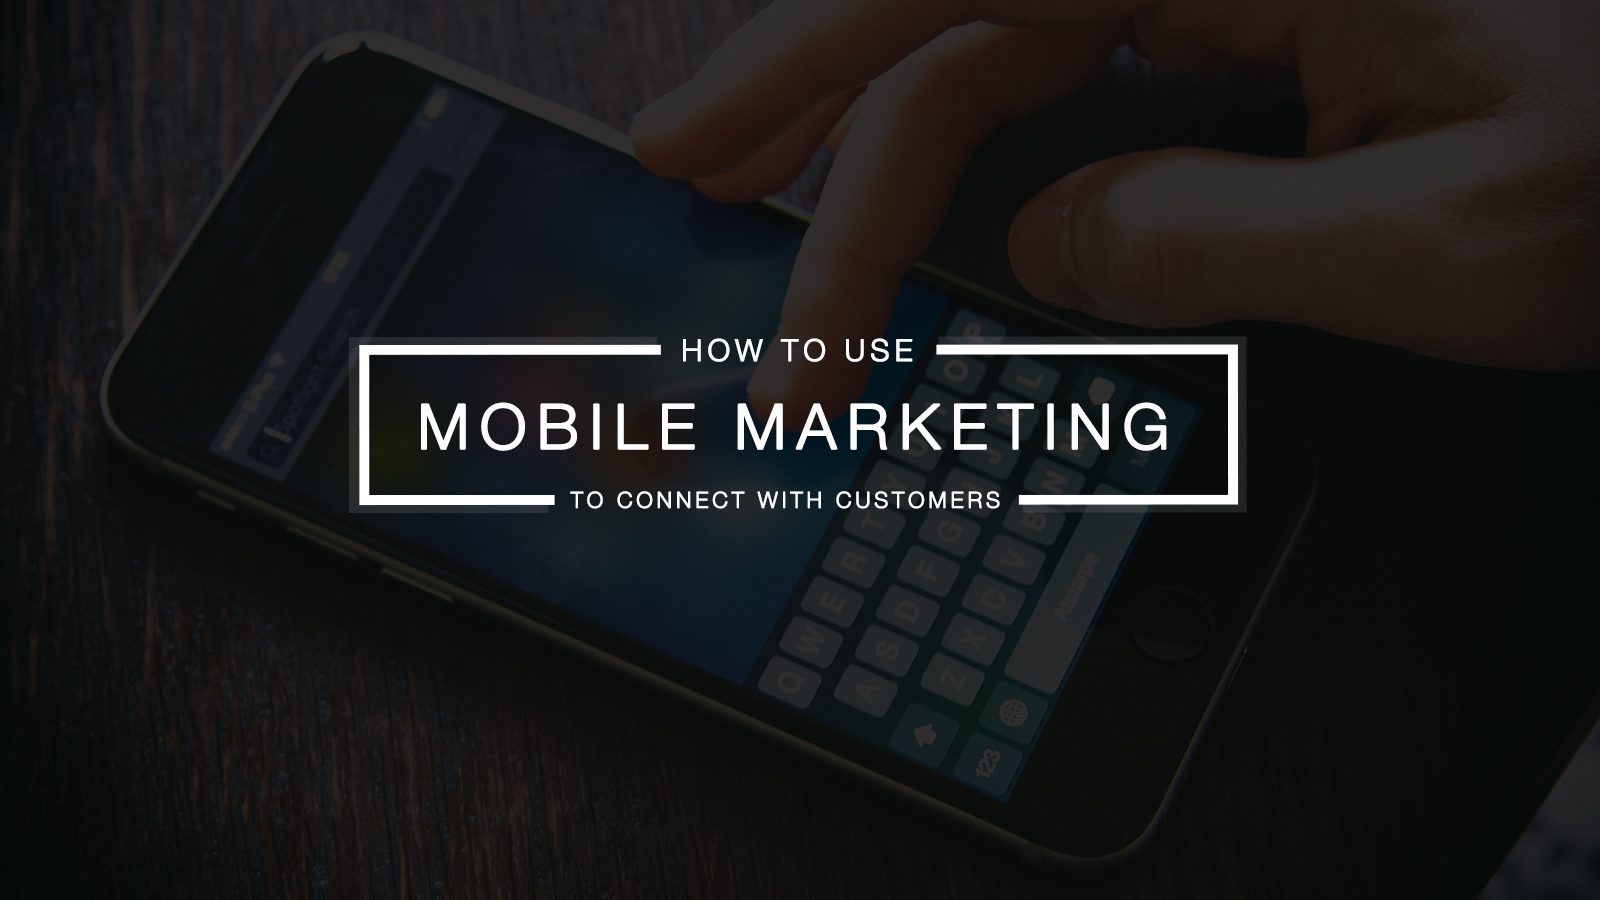 Using-Mobile-Marketing-to-Achieve-Direct-Connection